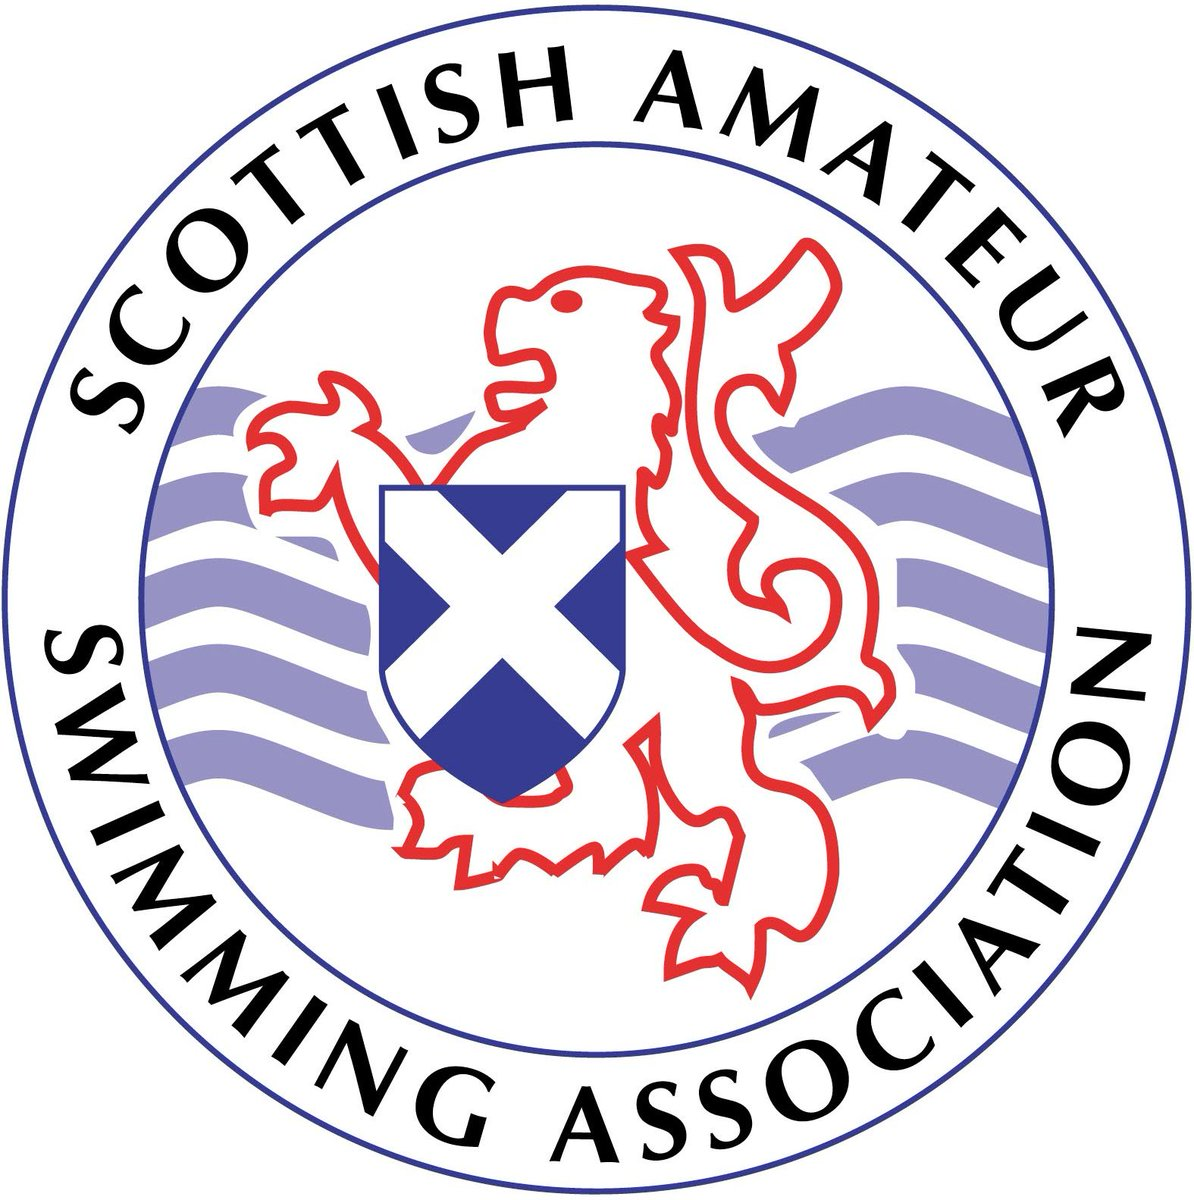 Scottish amateur swimming association